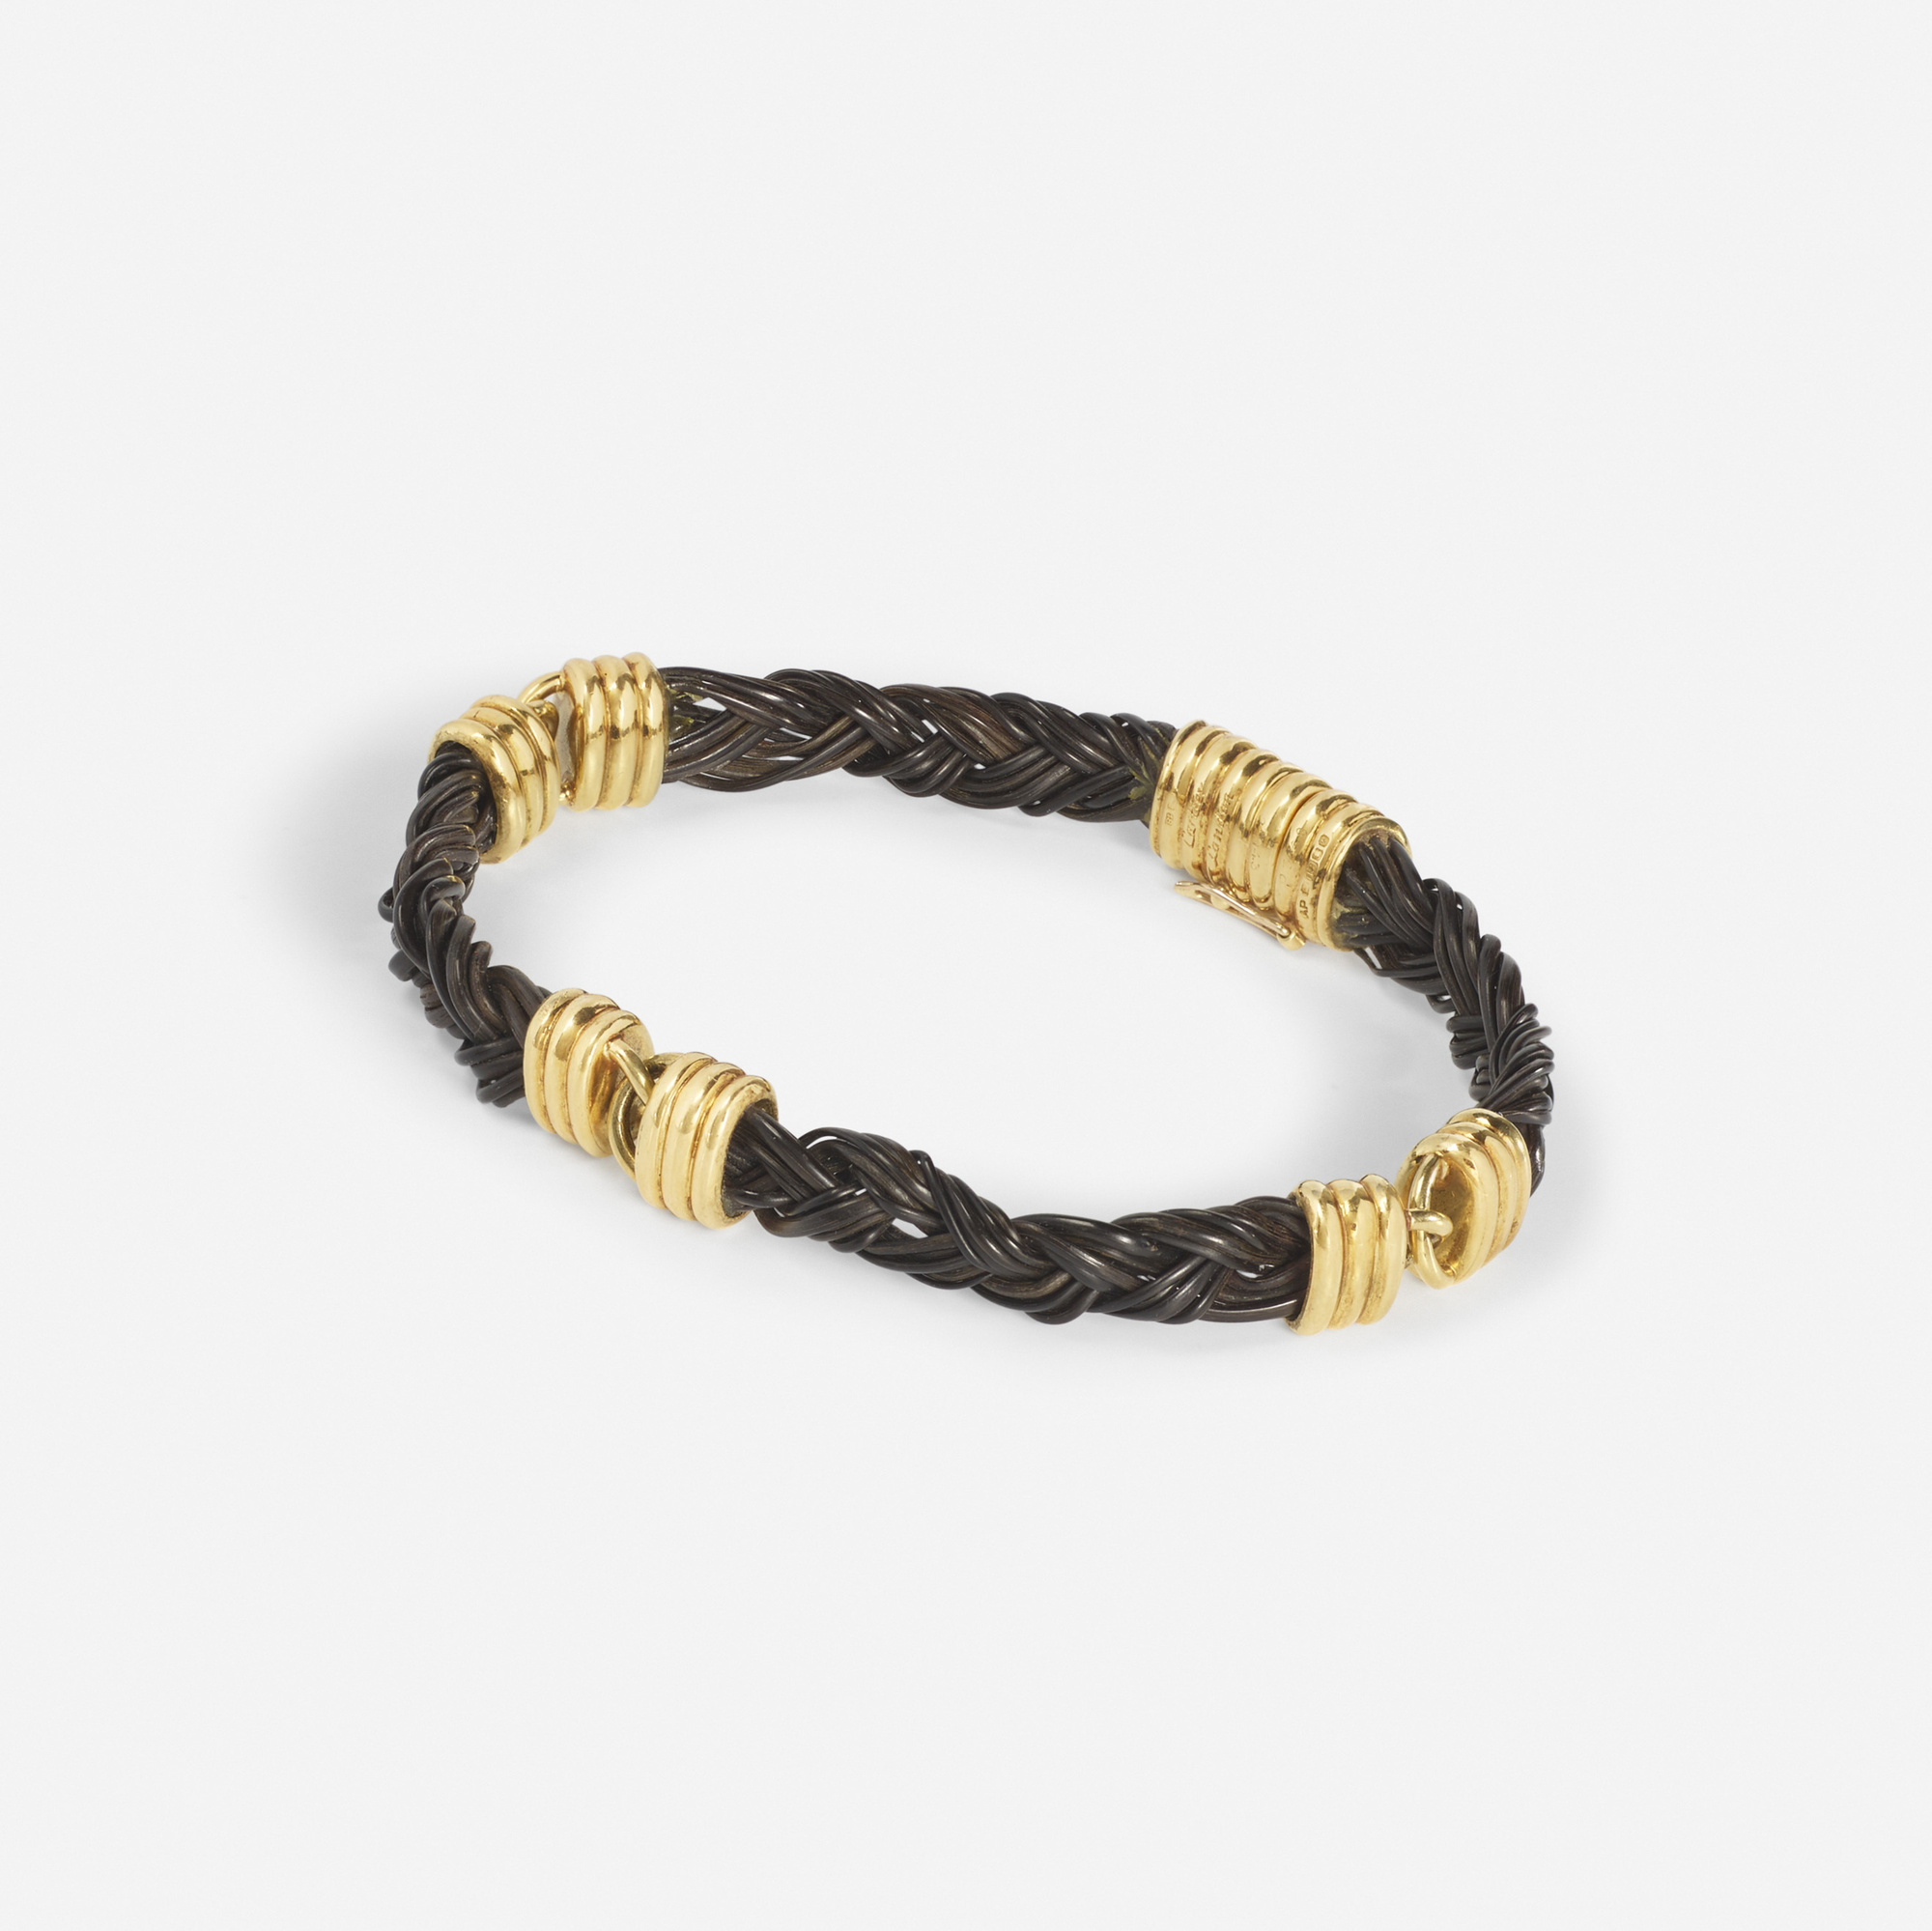 162: Cartier / A gold and elephant hair bracelet (1 of 2)